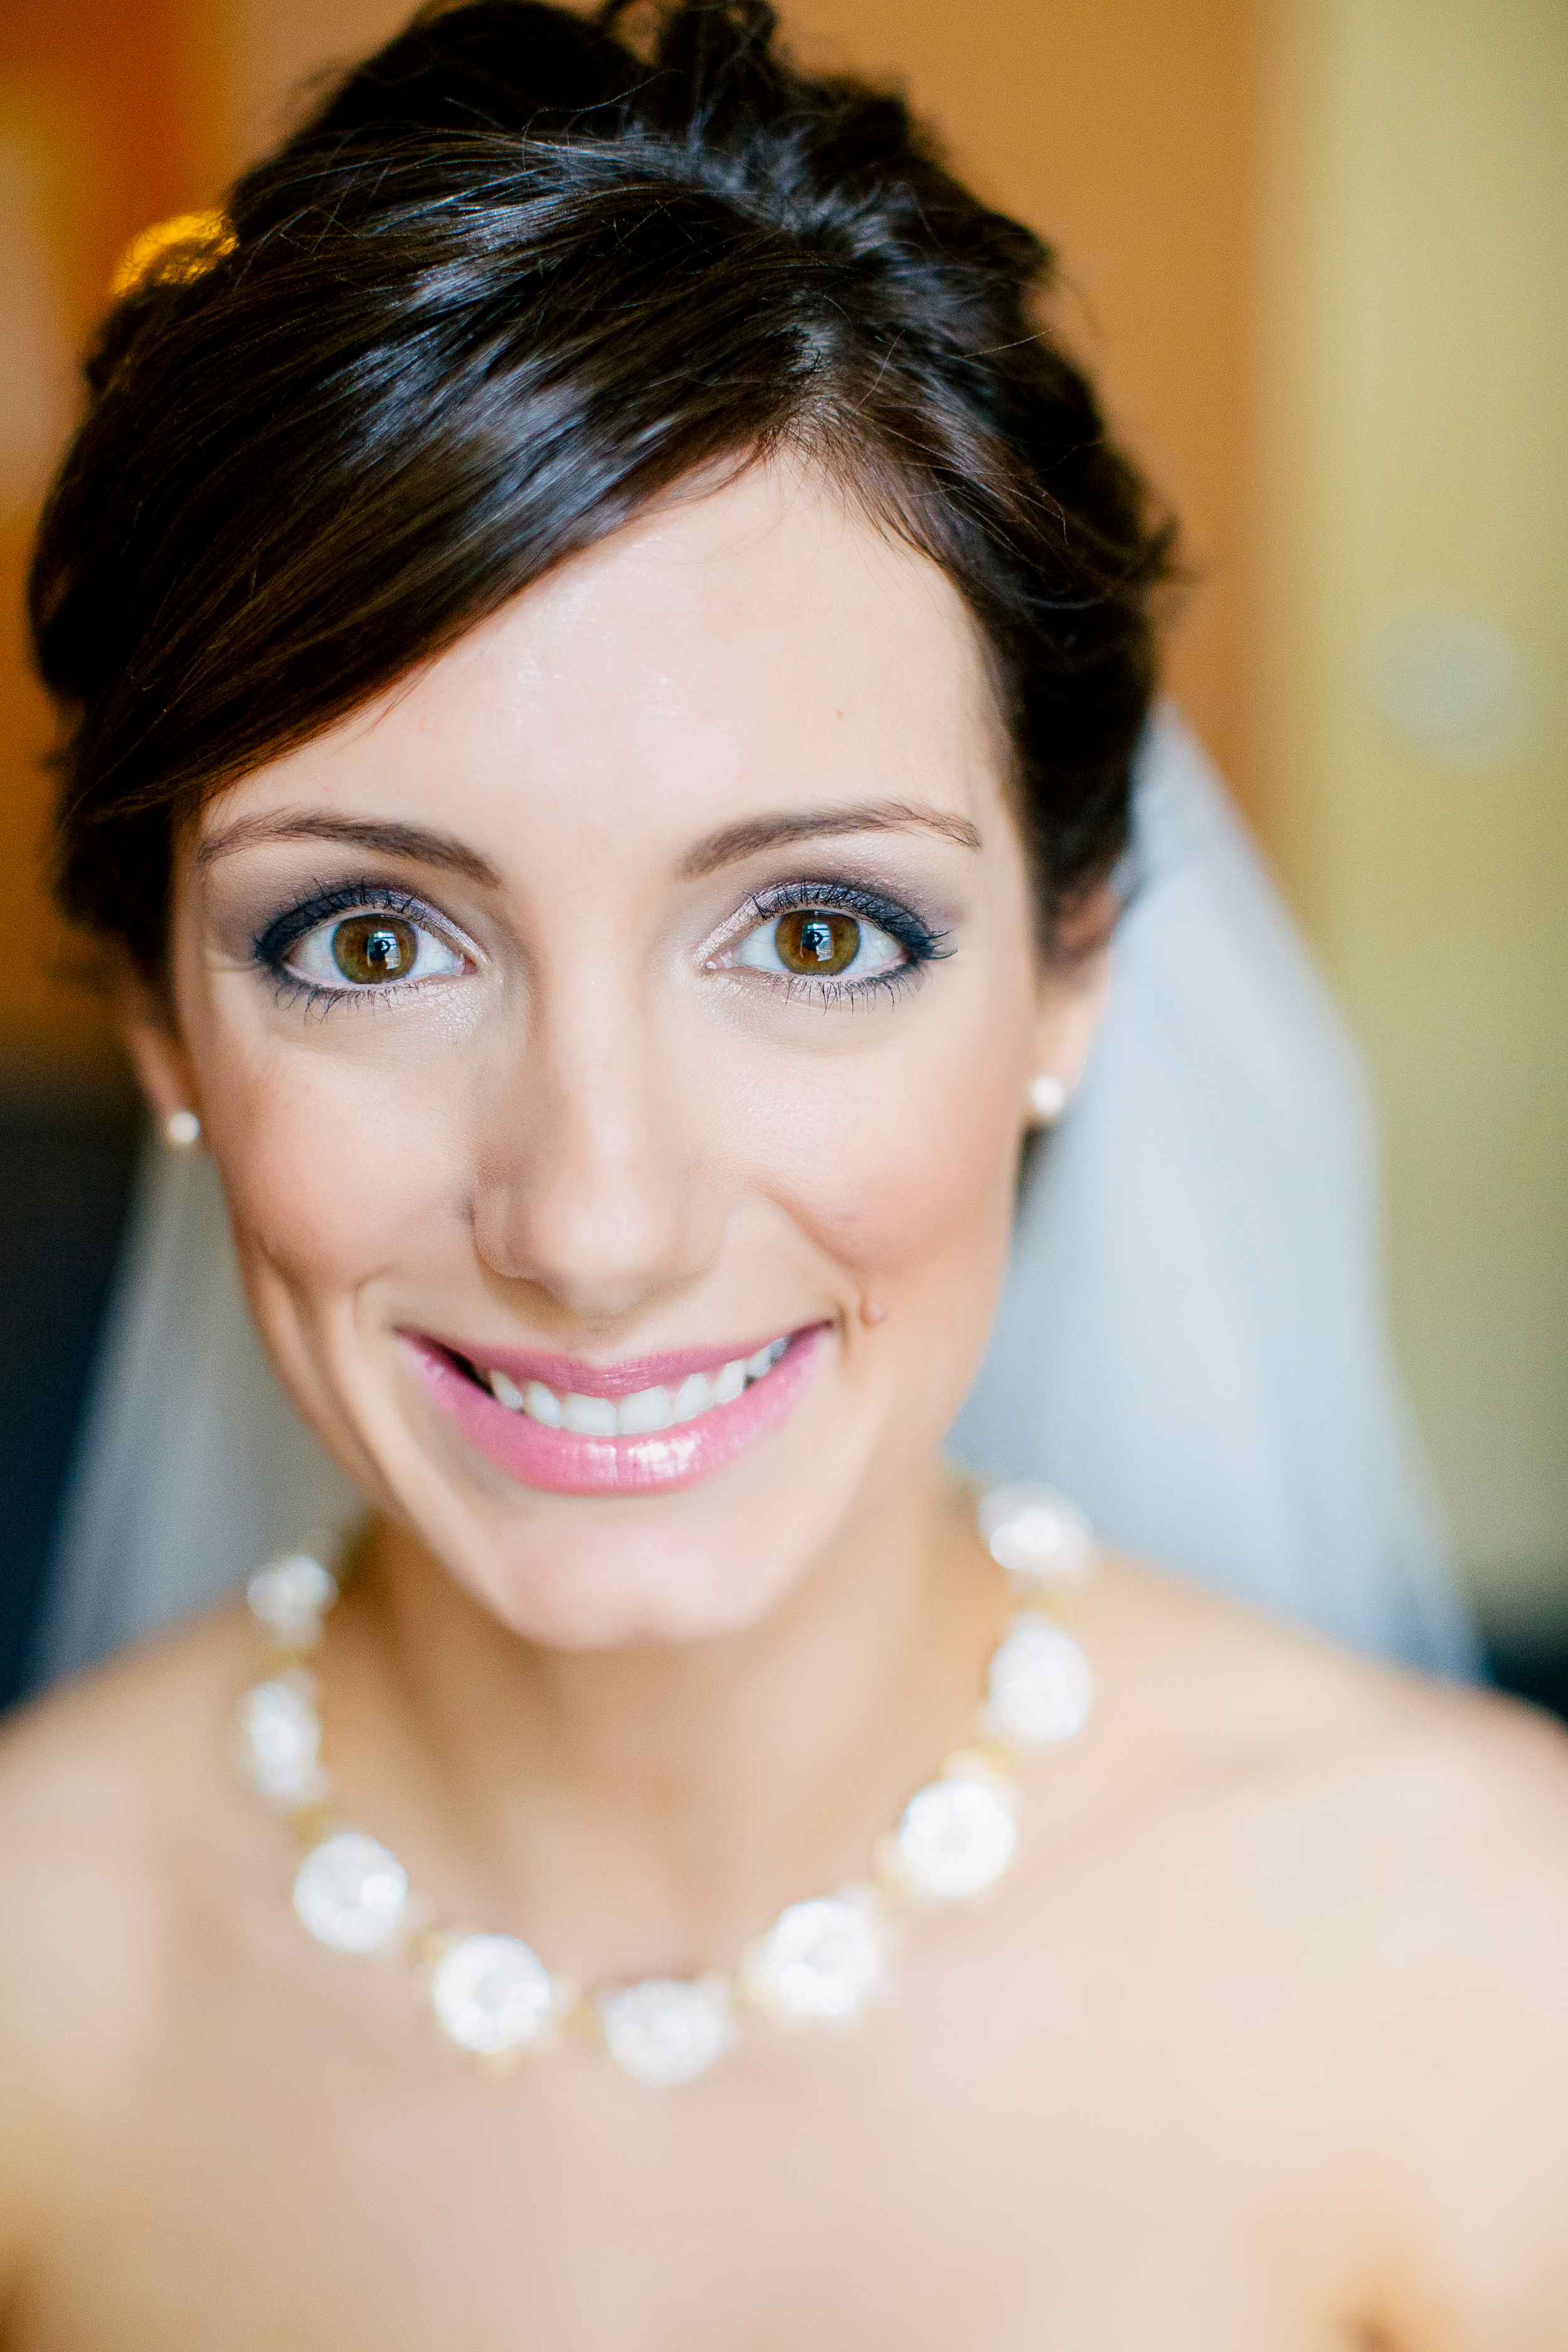 rachelle_andy_wedding_chicago-1005-Edit.jpg